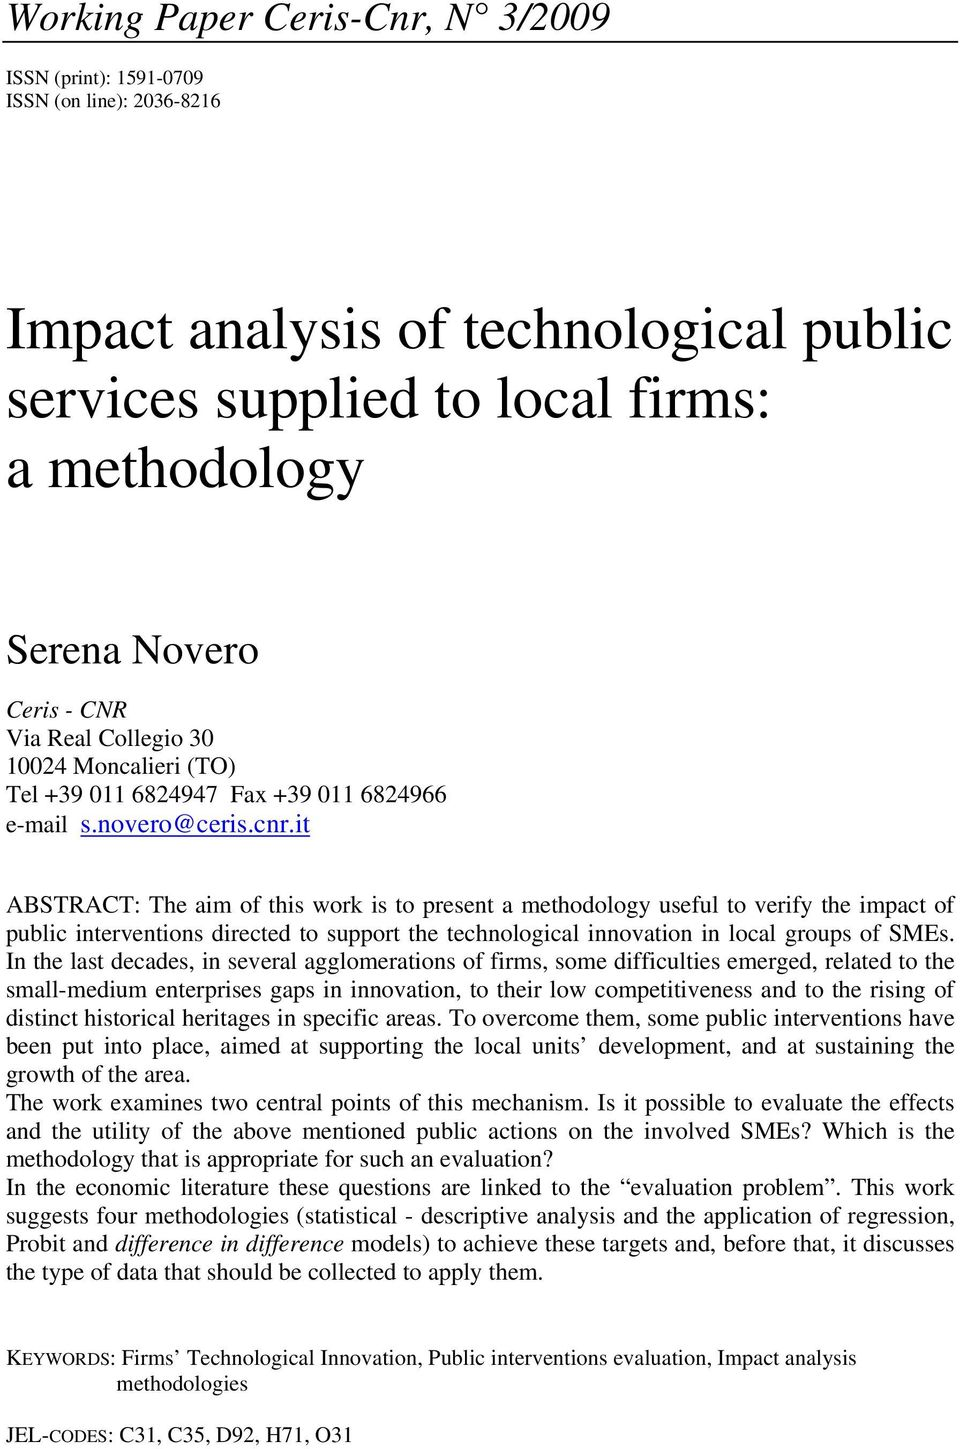 it ABSTRACT: The aim of this work is to present a methodology useful to verify the impact of public interventions directed to support the technological innovation in local groups of SMEs.